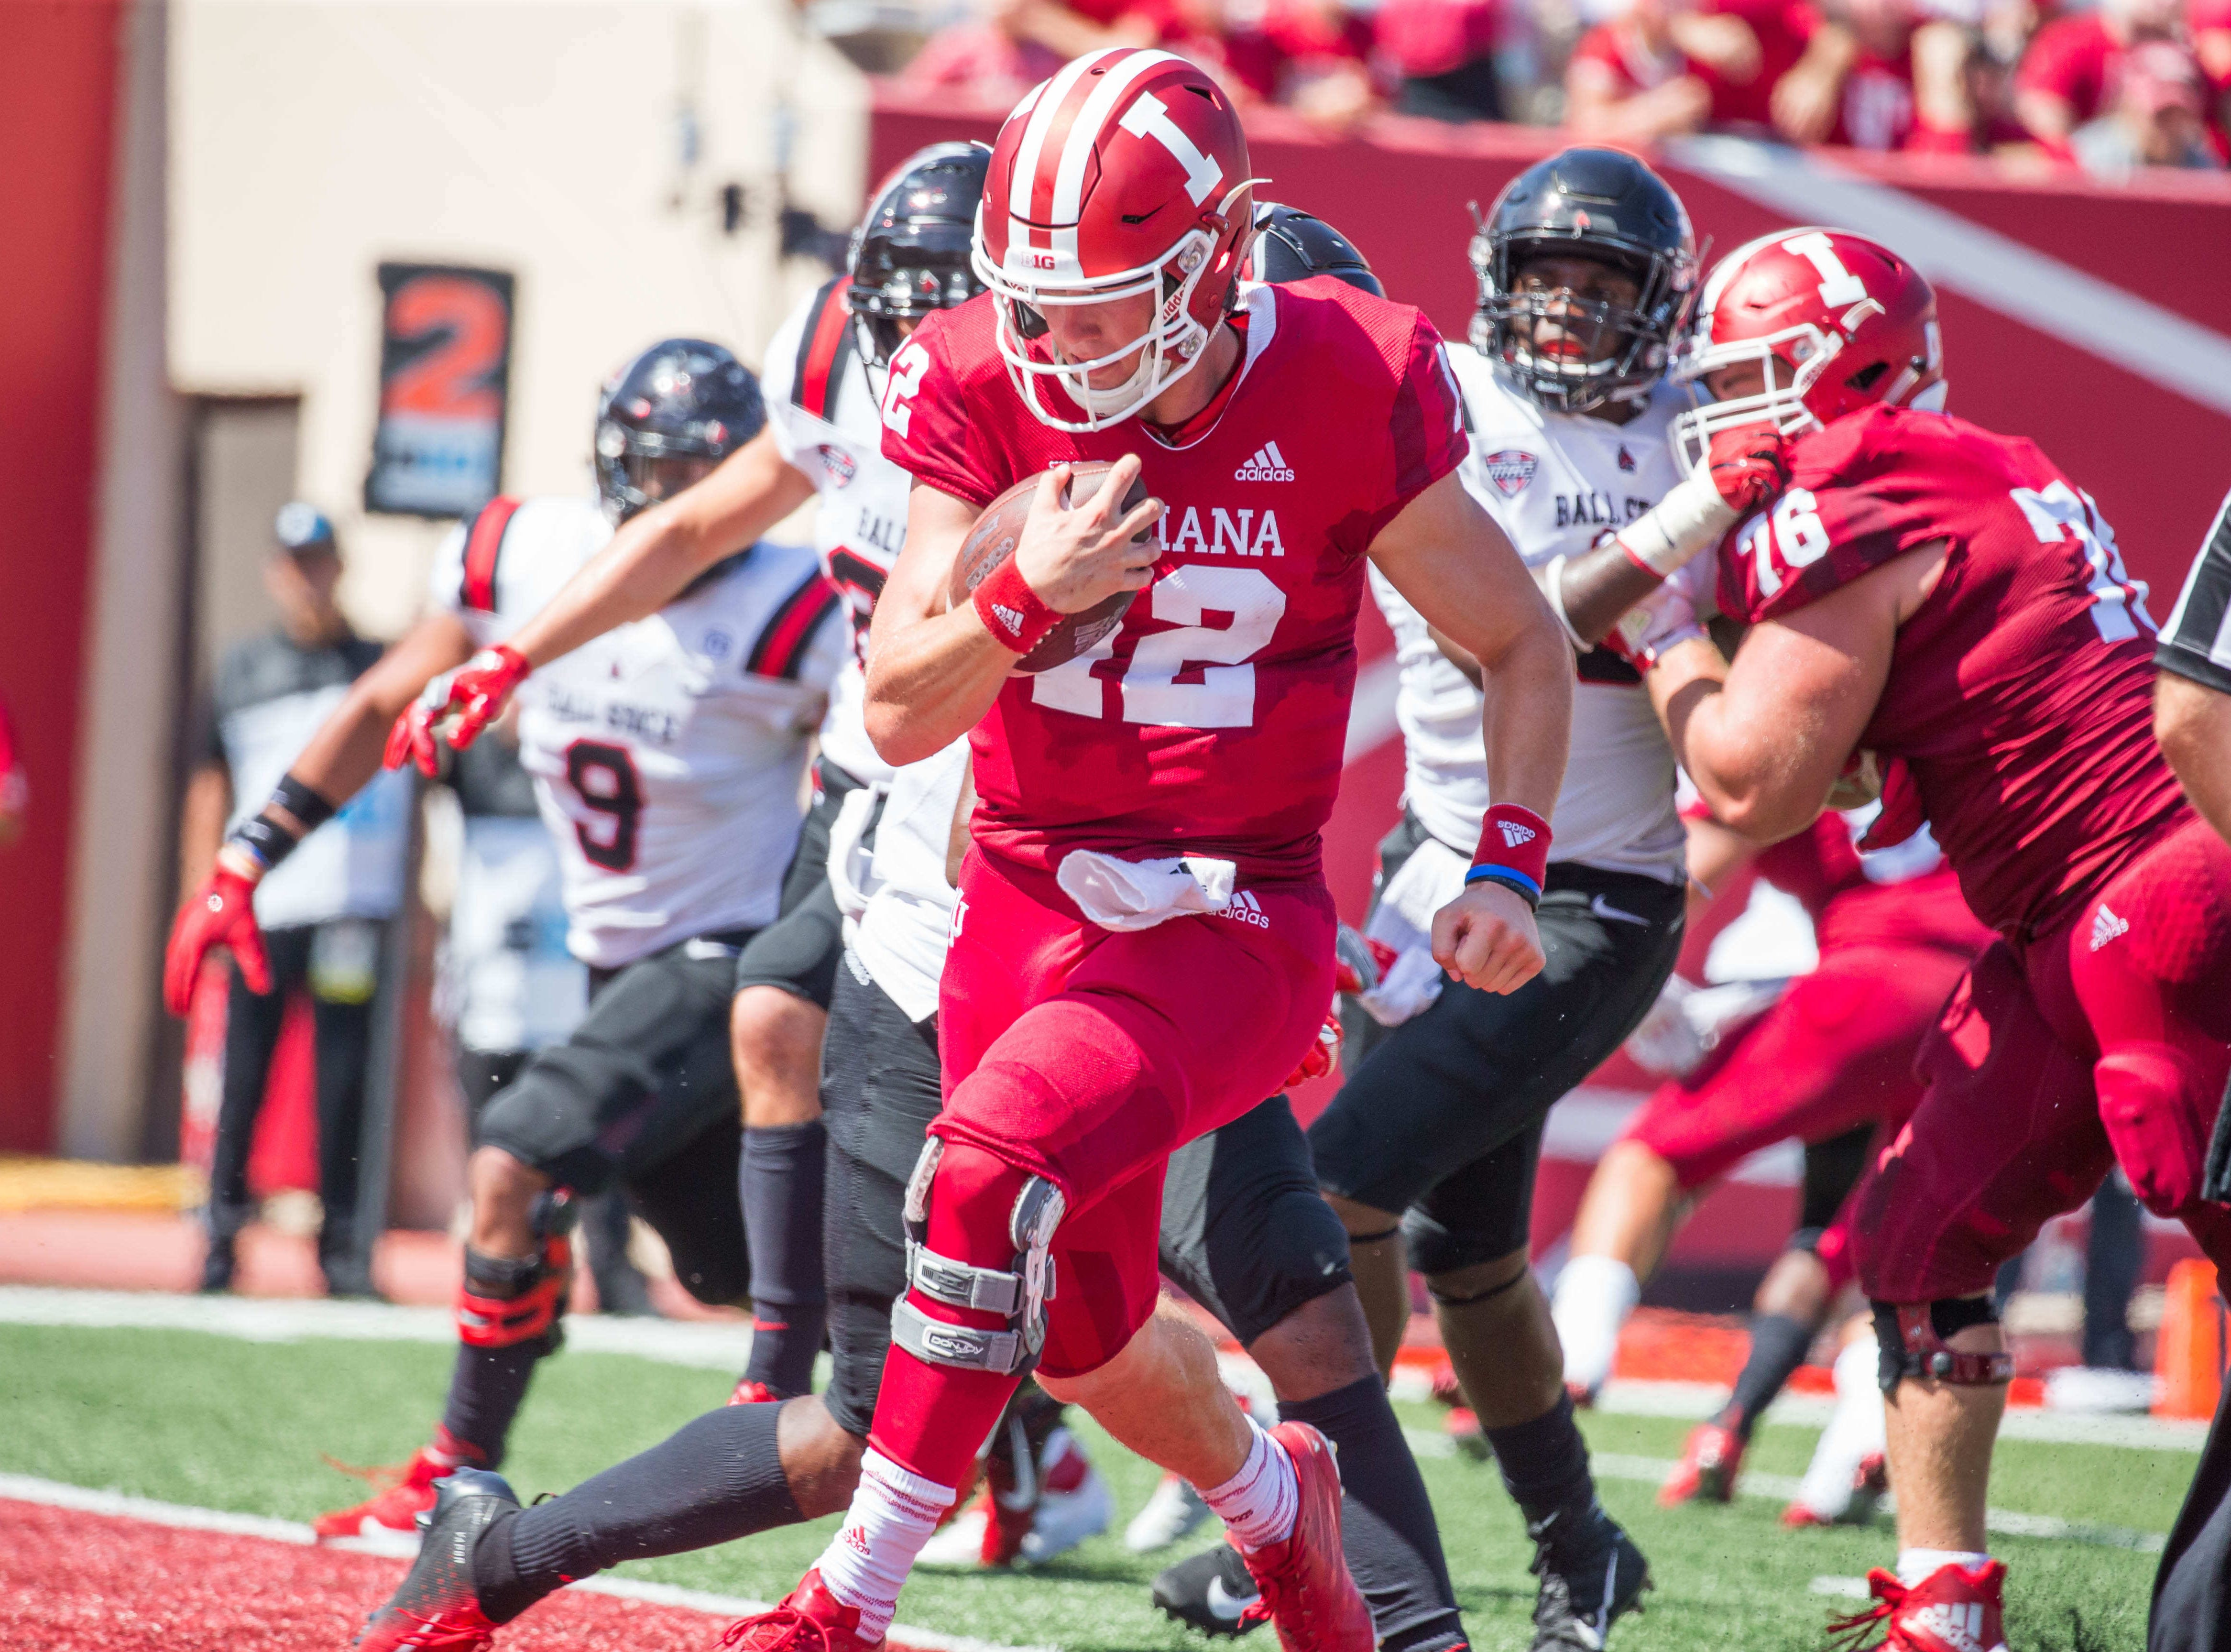 Indiana Hoosiers quarterback Peyton Ramsey (12) runs for a touchdown in the second quarter against the Ball State Cardinals at Memorial Stadium .